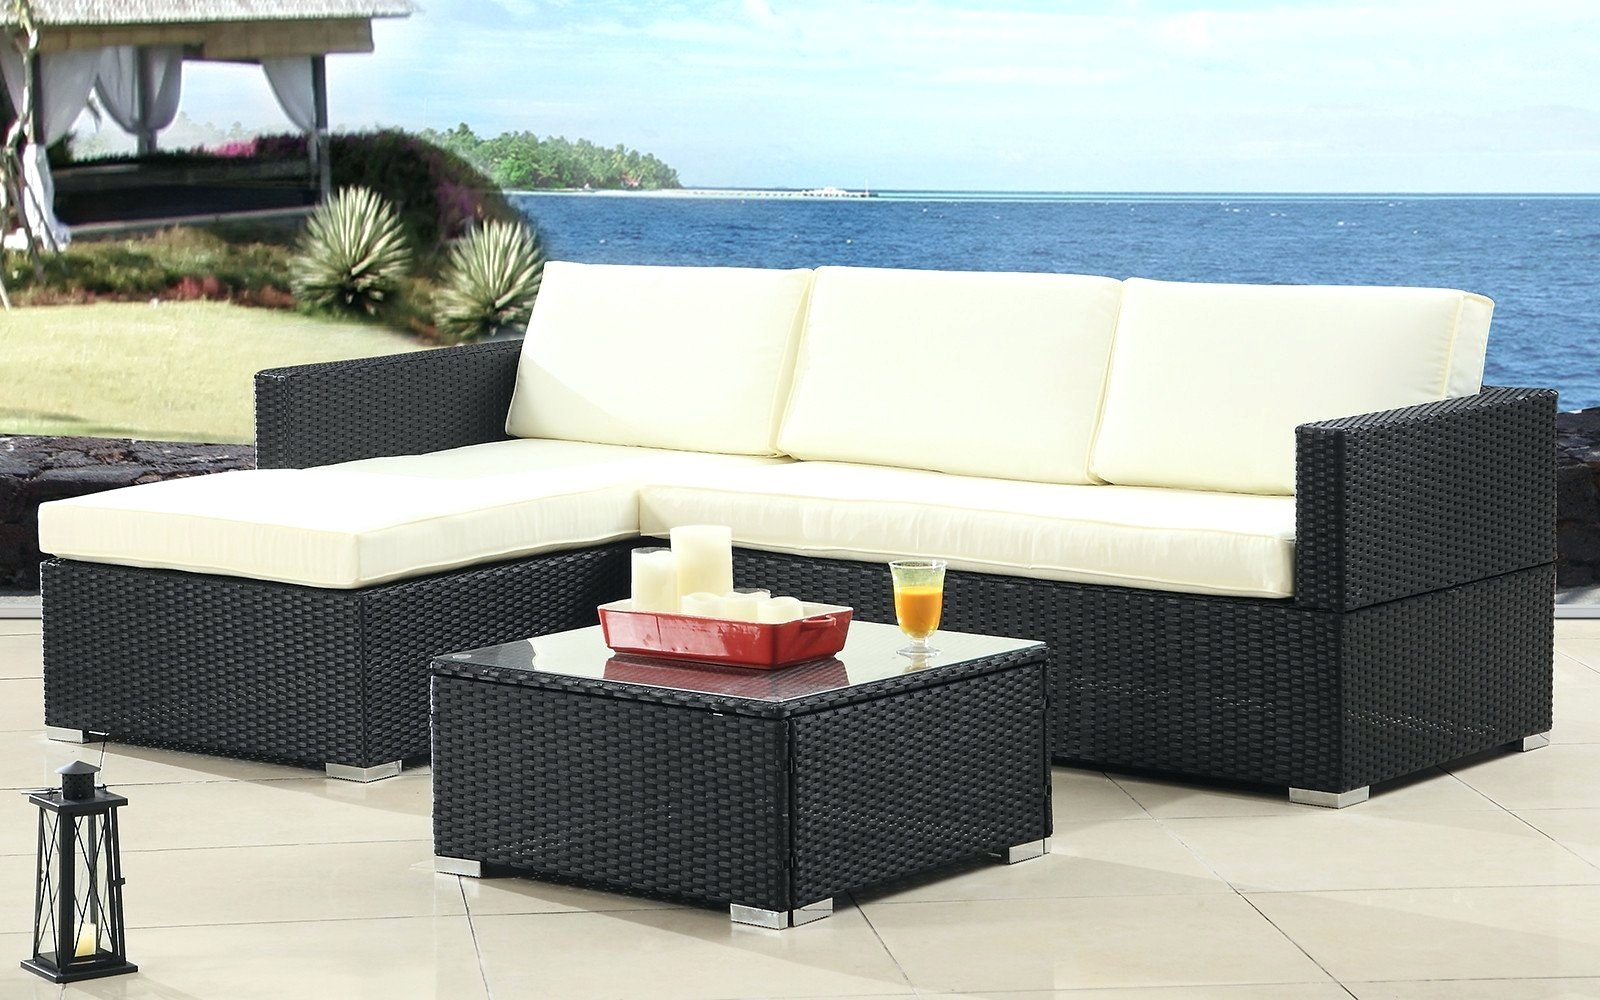 the fantastic real canadian tire sectional patio furniture ideas wicker sets plans hilo modern outdoor with coffee table ivory and black replacement cushions full size large sofa